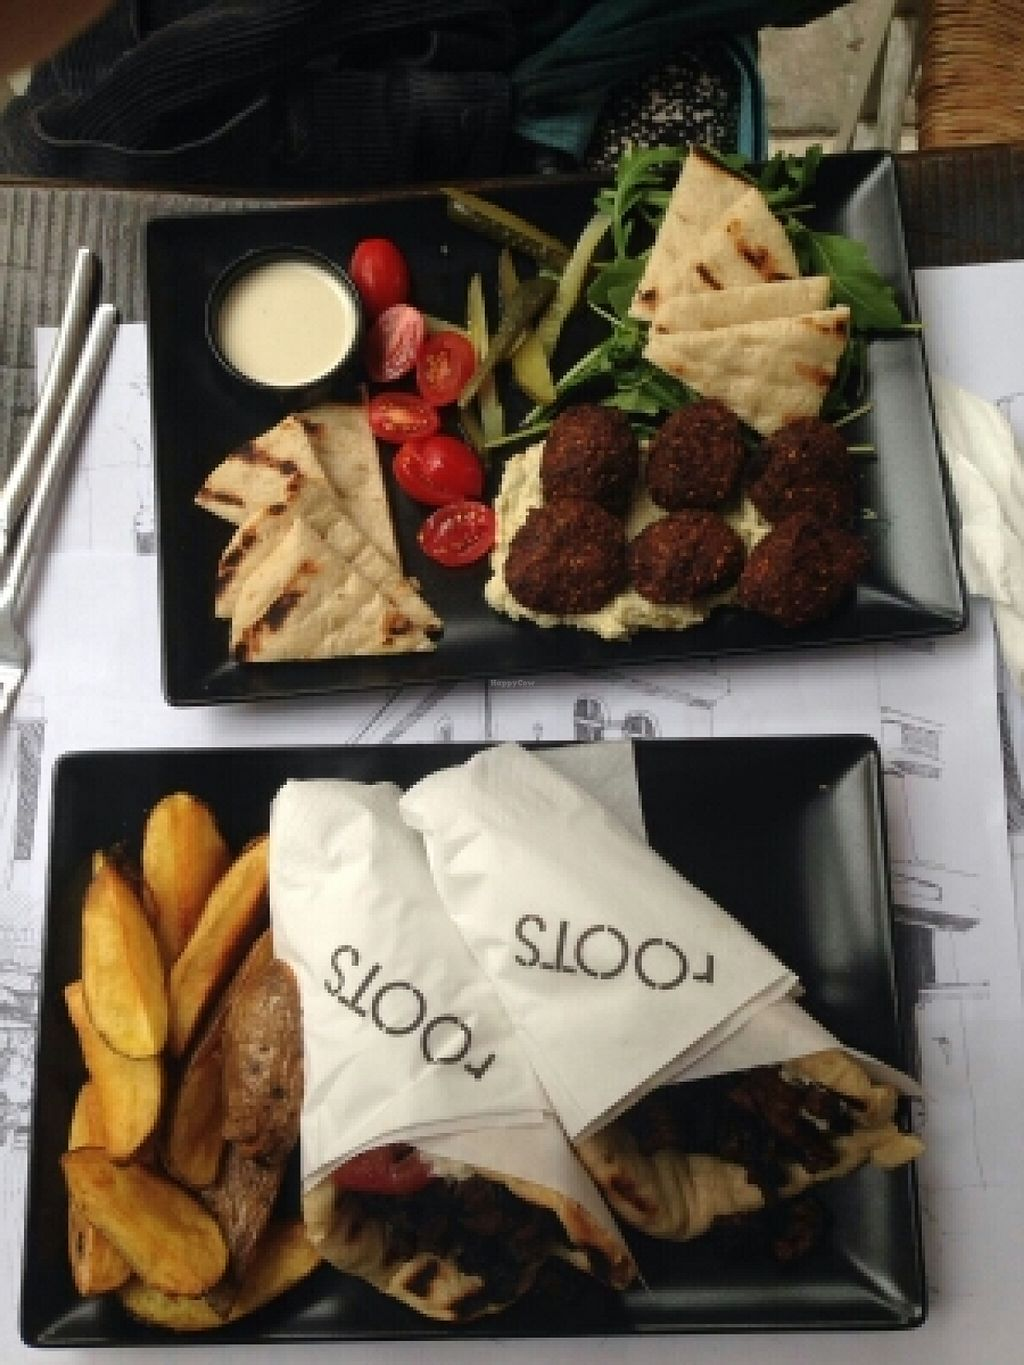 """Photo of rOOTS  by <a href=""""/members/profile/SalomePB"""">SalomePB</a> <br/>Falafel&Gyros <br/> June 19, 2016  - <a href='/contact/abuse/image/56798/154844'>Report</a>"""